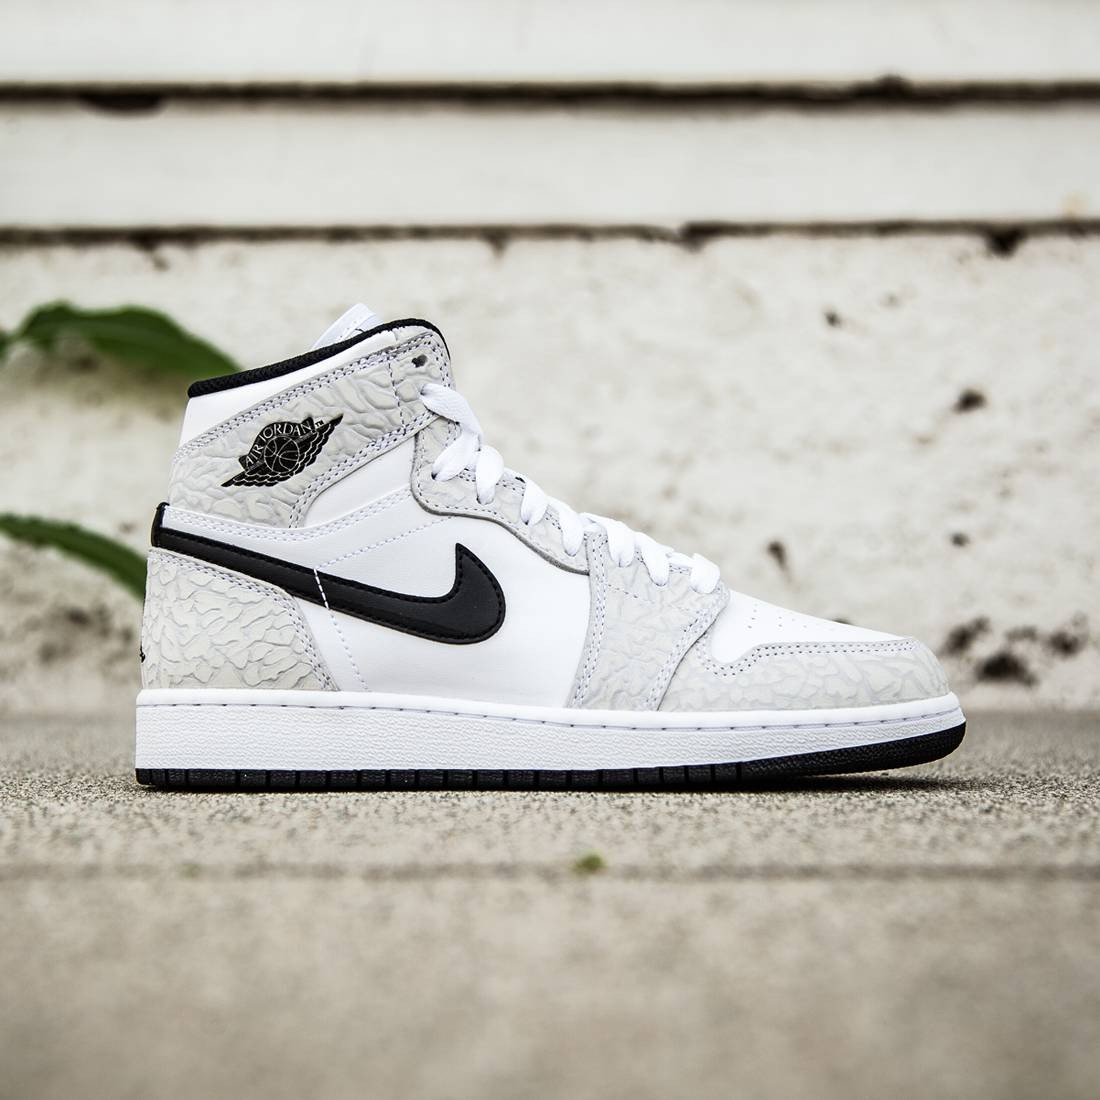 e9e26352b188 Jordan Big Kids Air Jordan 1 Retro HI Prem BG (white   black   pure  platinum)